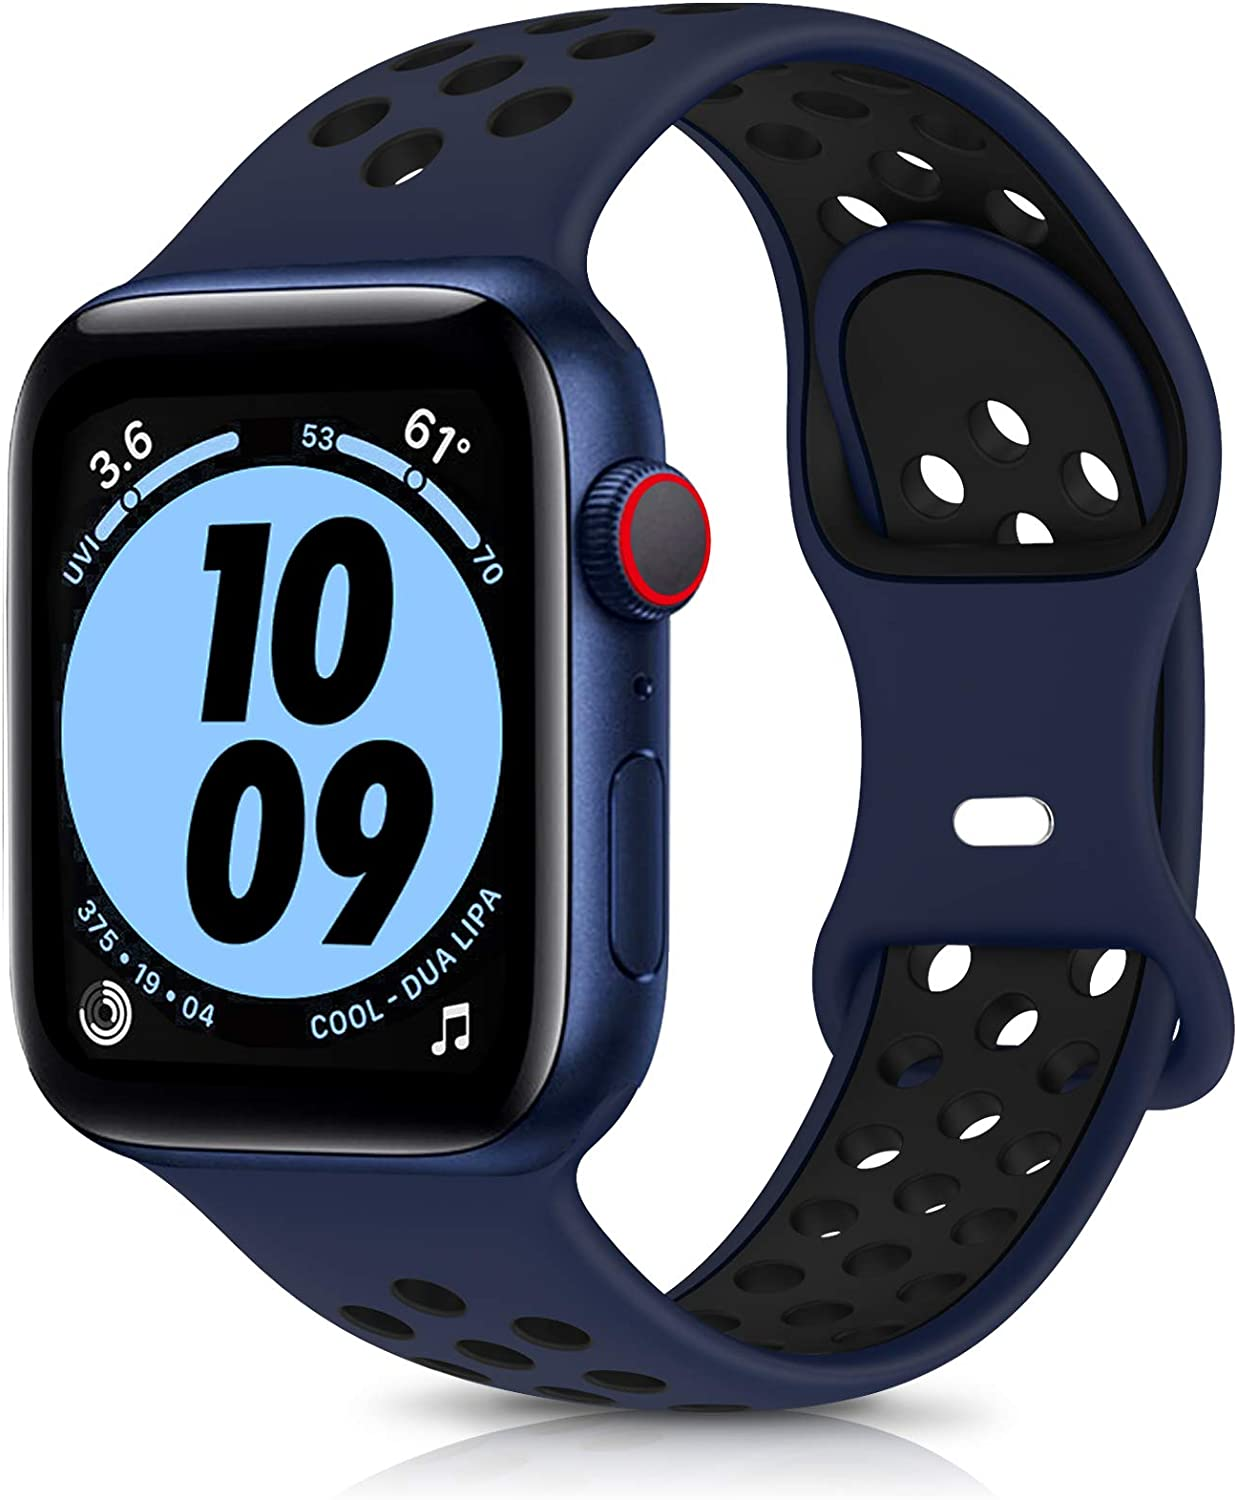 OYODSS Sport Bands Compatible with Apple Watch Band 38mm 40mm 42mm 44mm, Breathable Soft Silicone Replacement Wristband Compatible with iWatch Series 6 5 4 3 2 1 SE Women Men Midnight Blue&Black